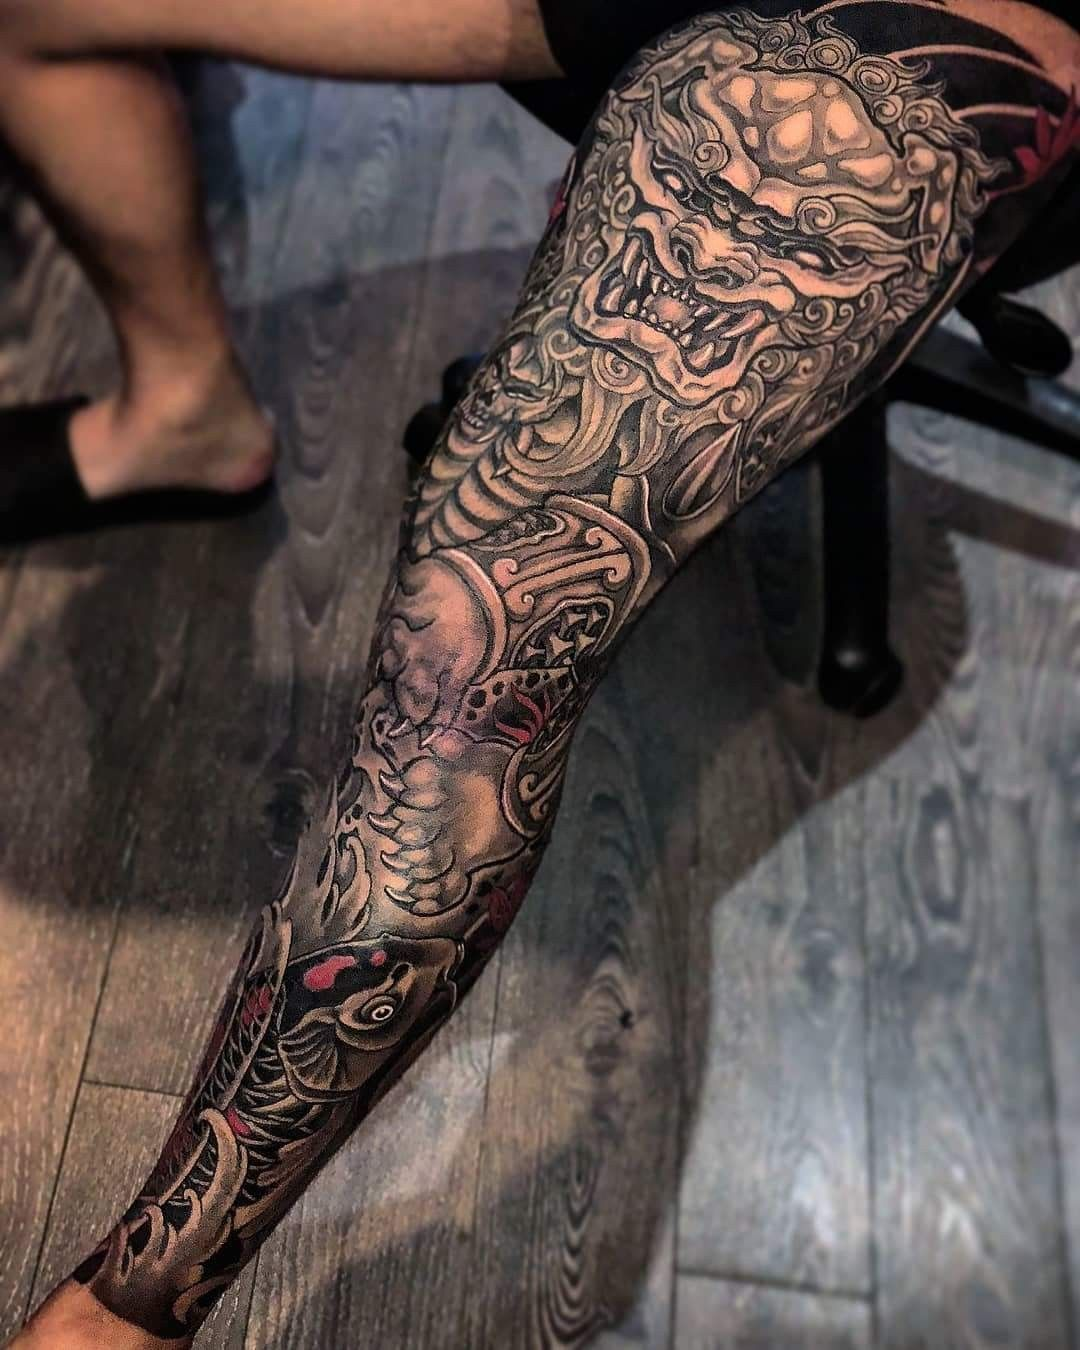 Tattoo Designs Legs: Pin By Jordan Barton On Tattoo